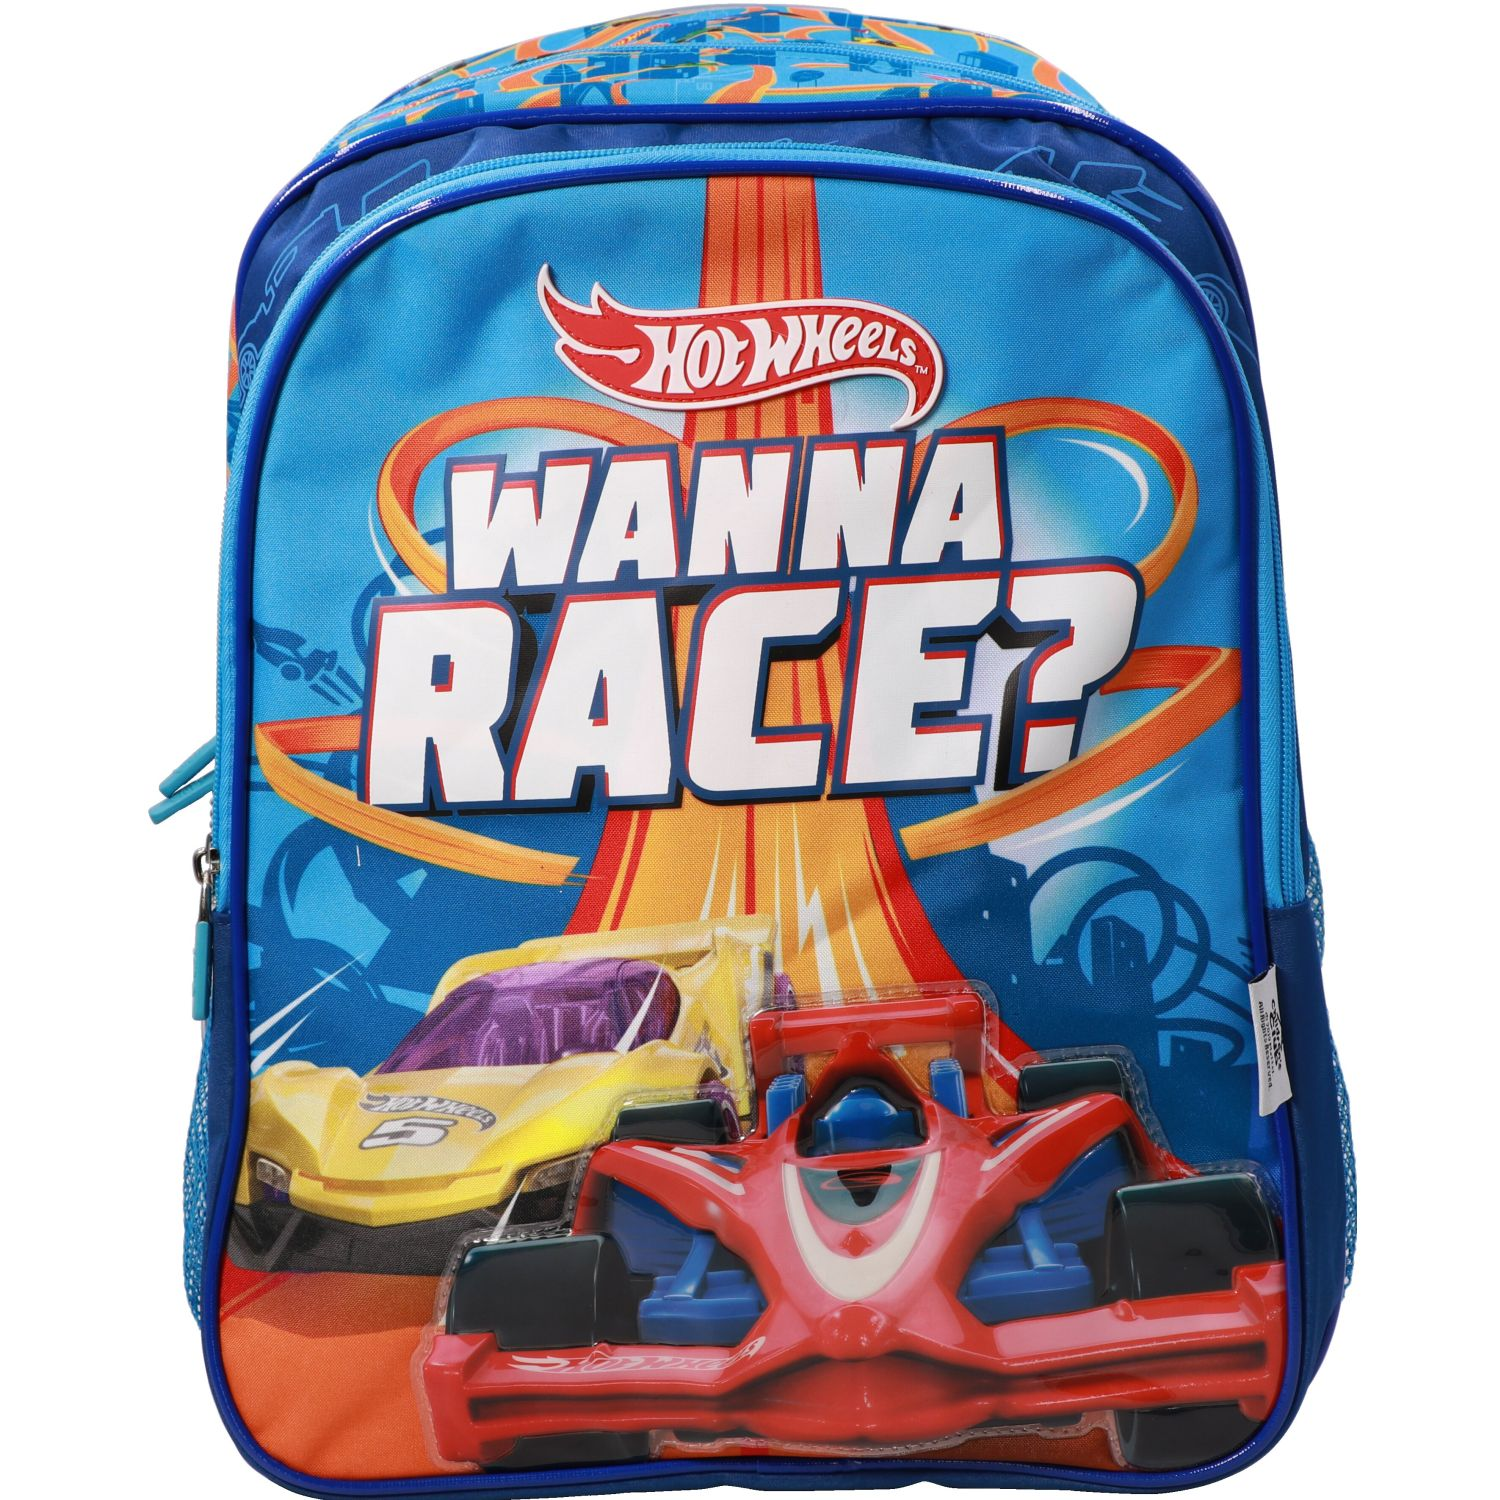 Hot Wheels mochila niÑo hot wheels Azul / naranja mochilas